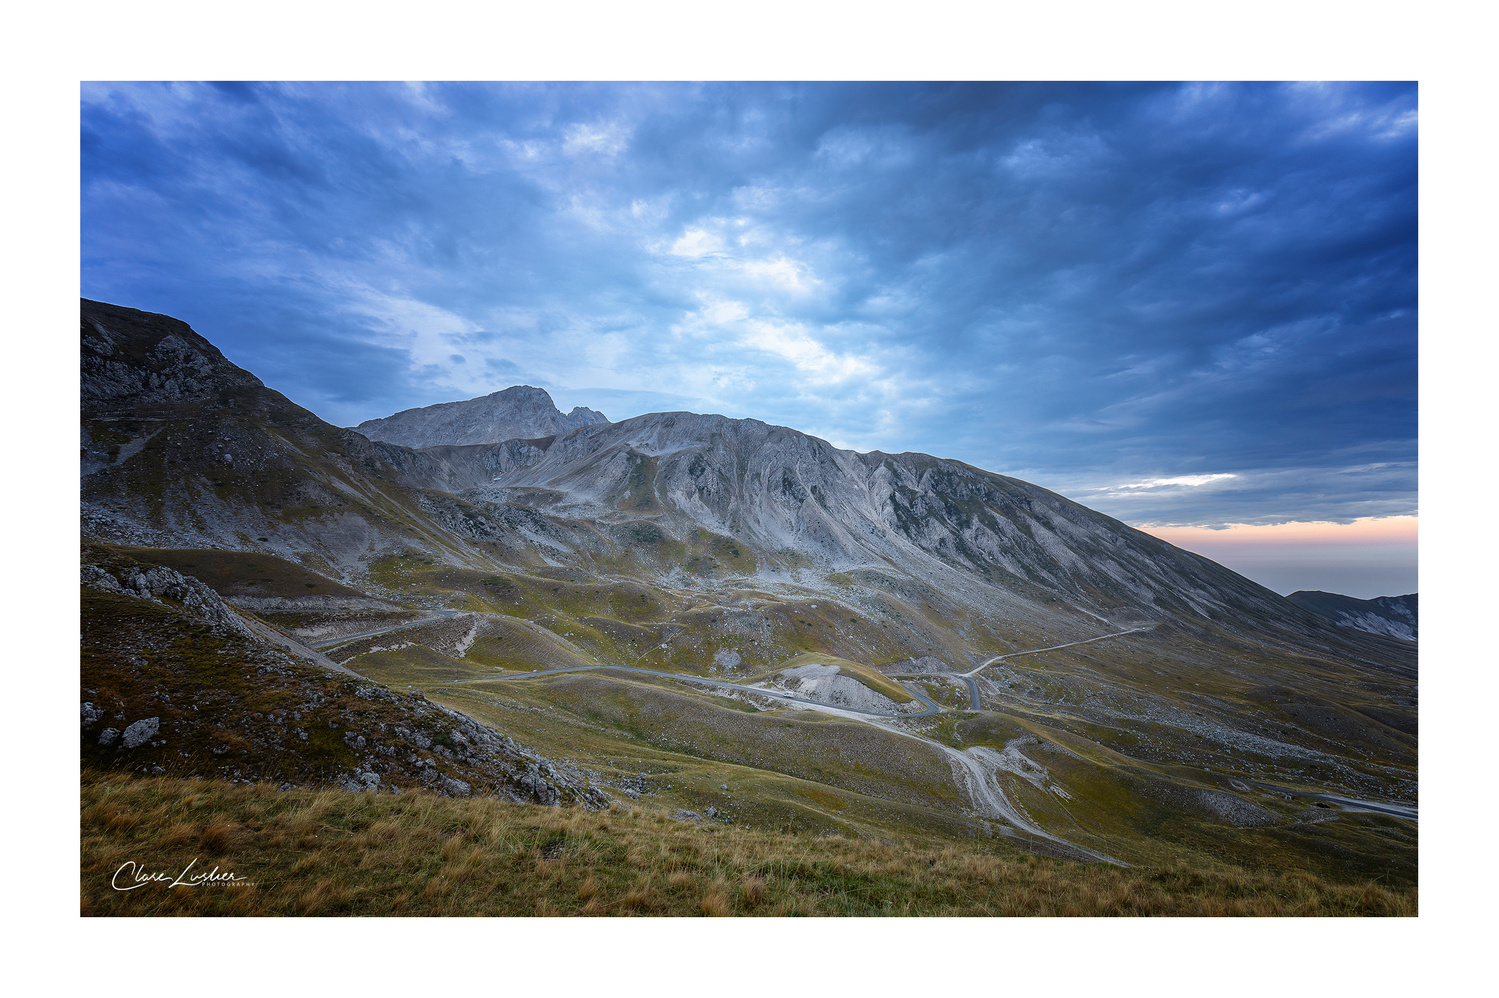 Campo Imperatore at Blue Hour by Clare Lusher